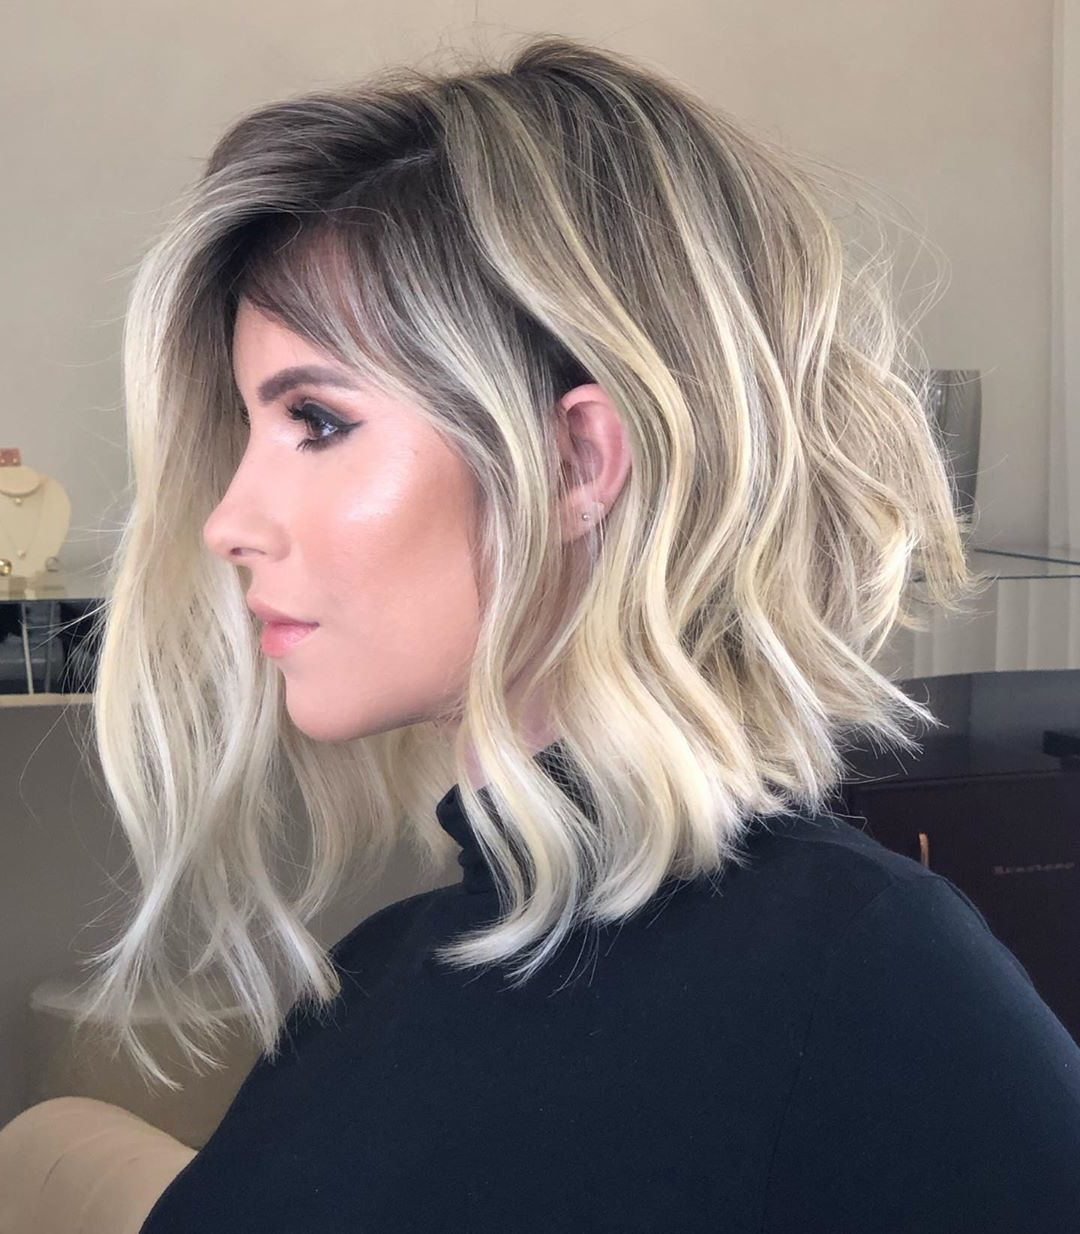 43 Wavy Bob Hairstyles In 2019 | Best Short, Medium & Long Bobs For Asymmetrical Grunge Bob Hairstyles (View 9 of 20)